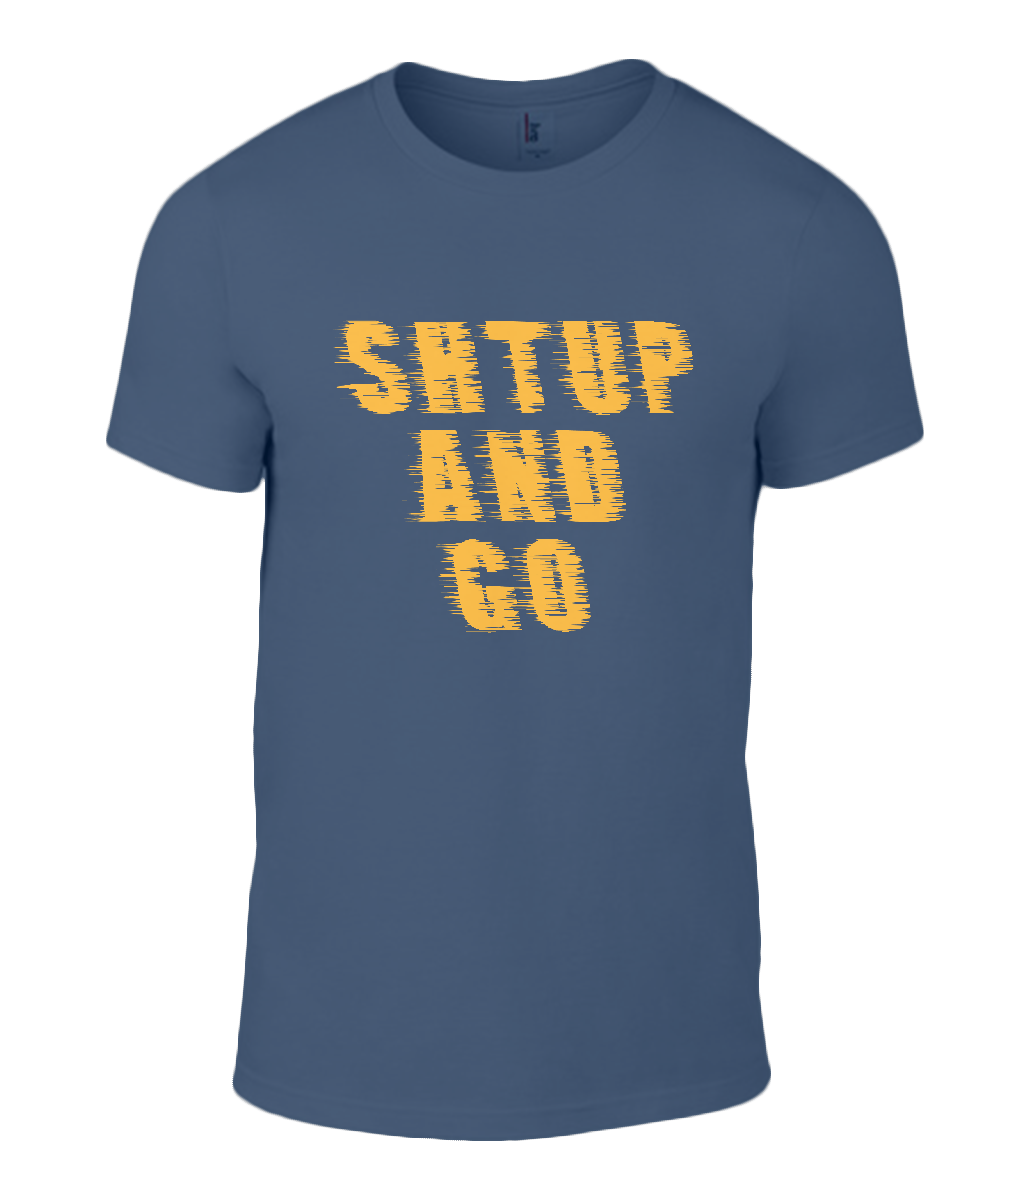 Round Neck T-Shirt - Shtup and Go